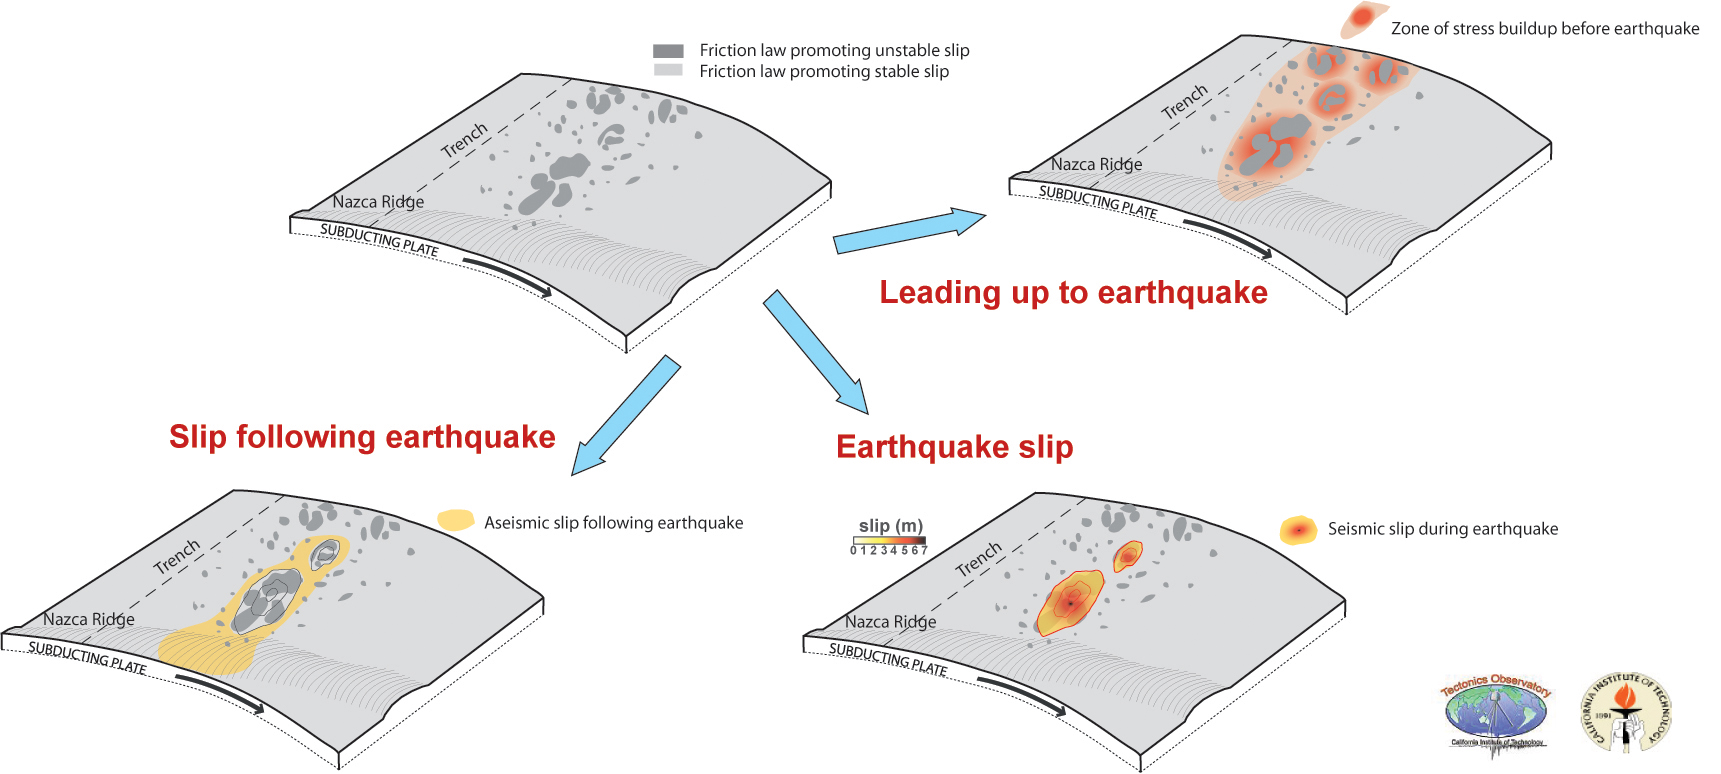 Old Fashioned The Anatomy Of An Earthquake Crest - Human Anatomy ...